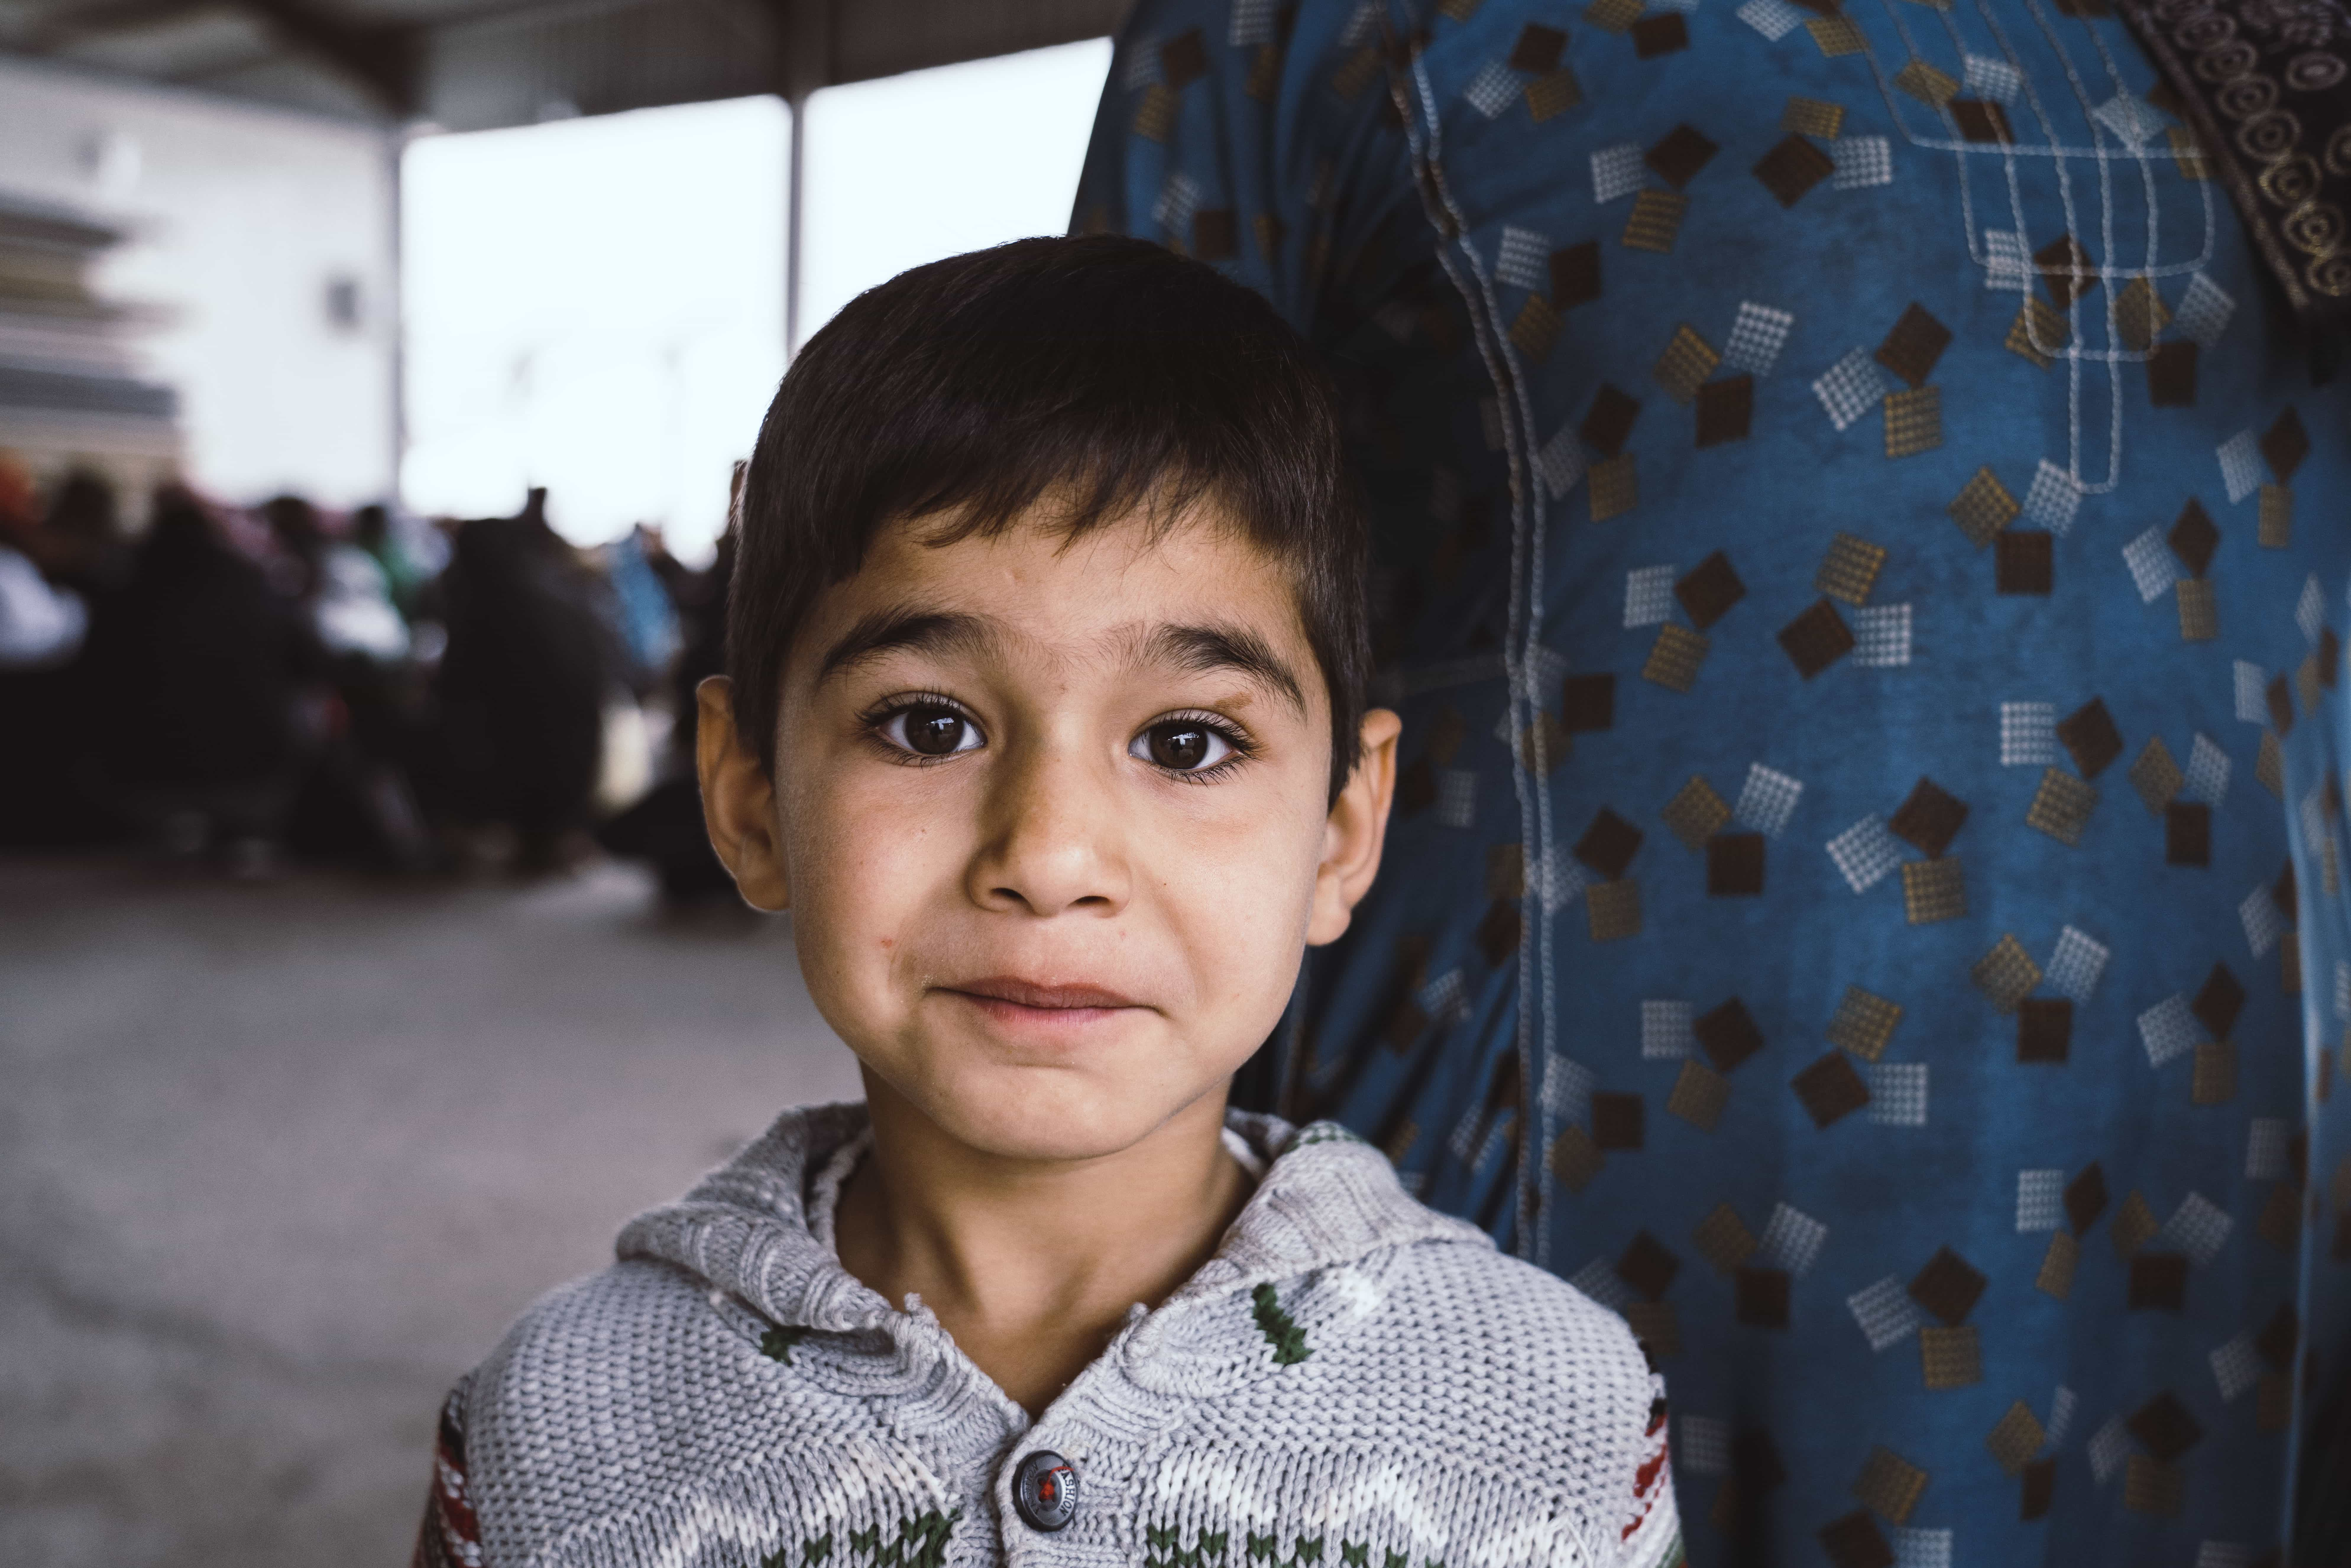 Syria – Innocent lives are in grave danger